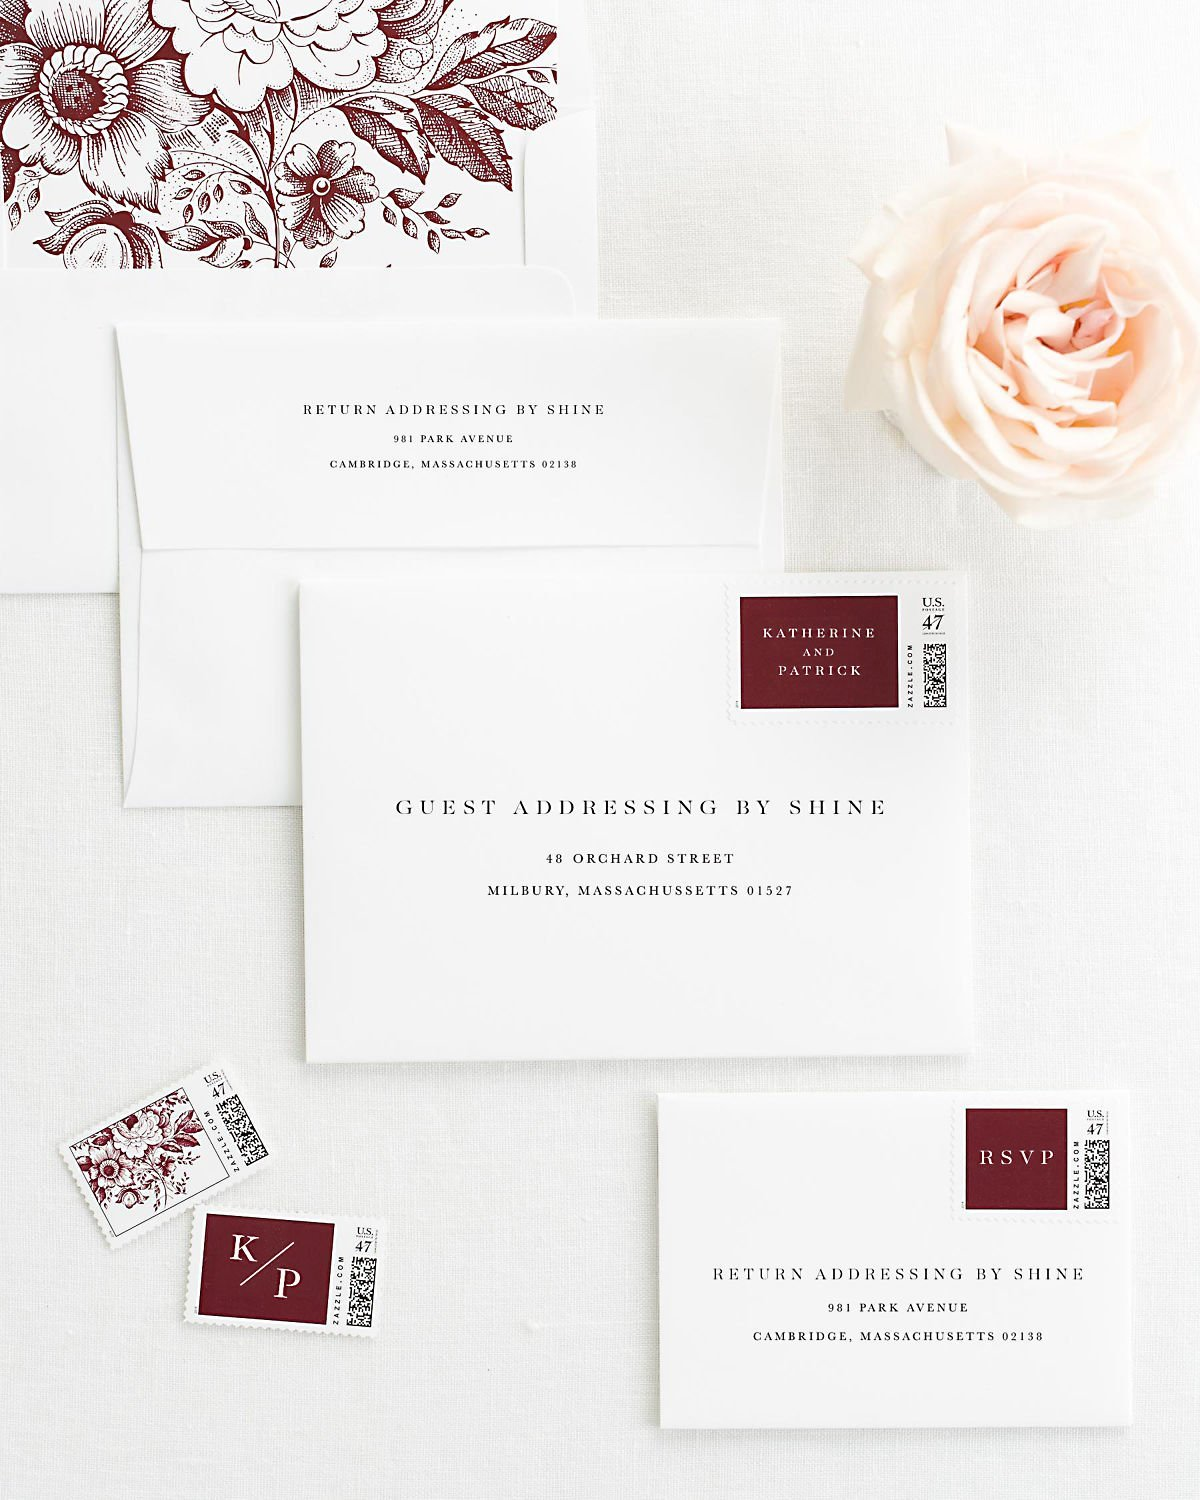 wedding envelopes with guest addressing and custom stamps in cabernet